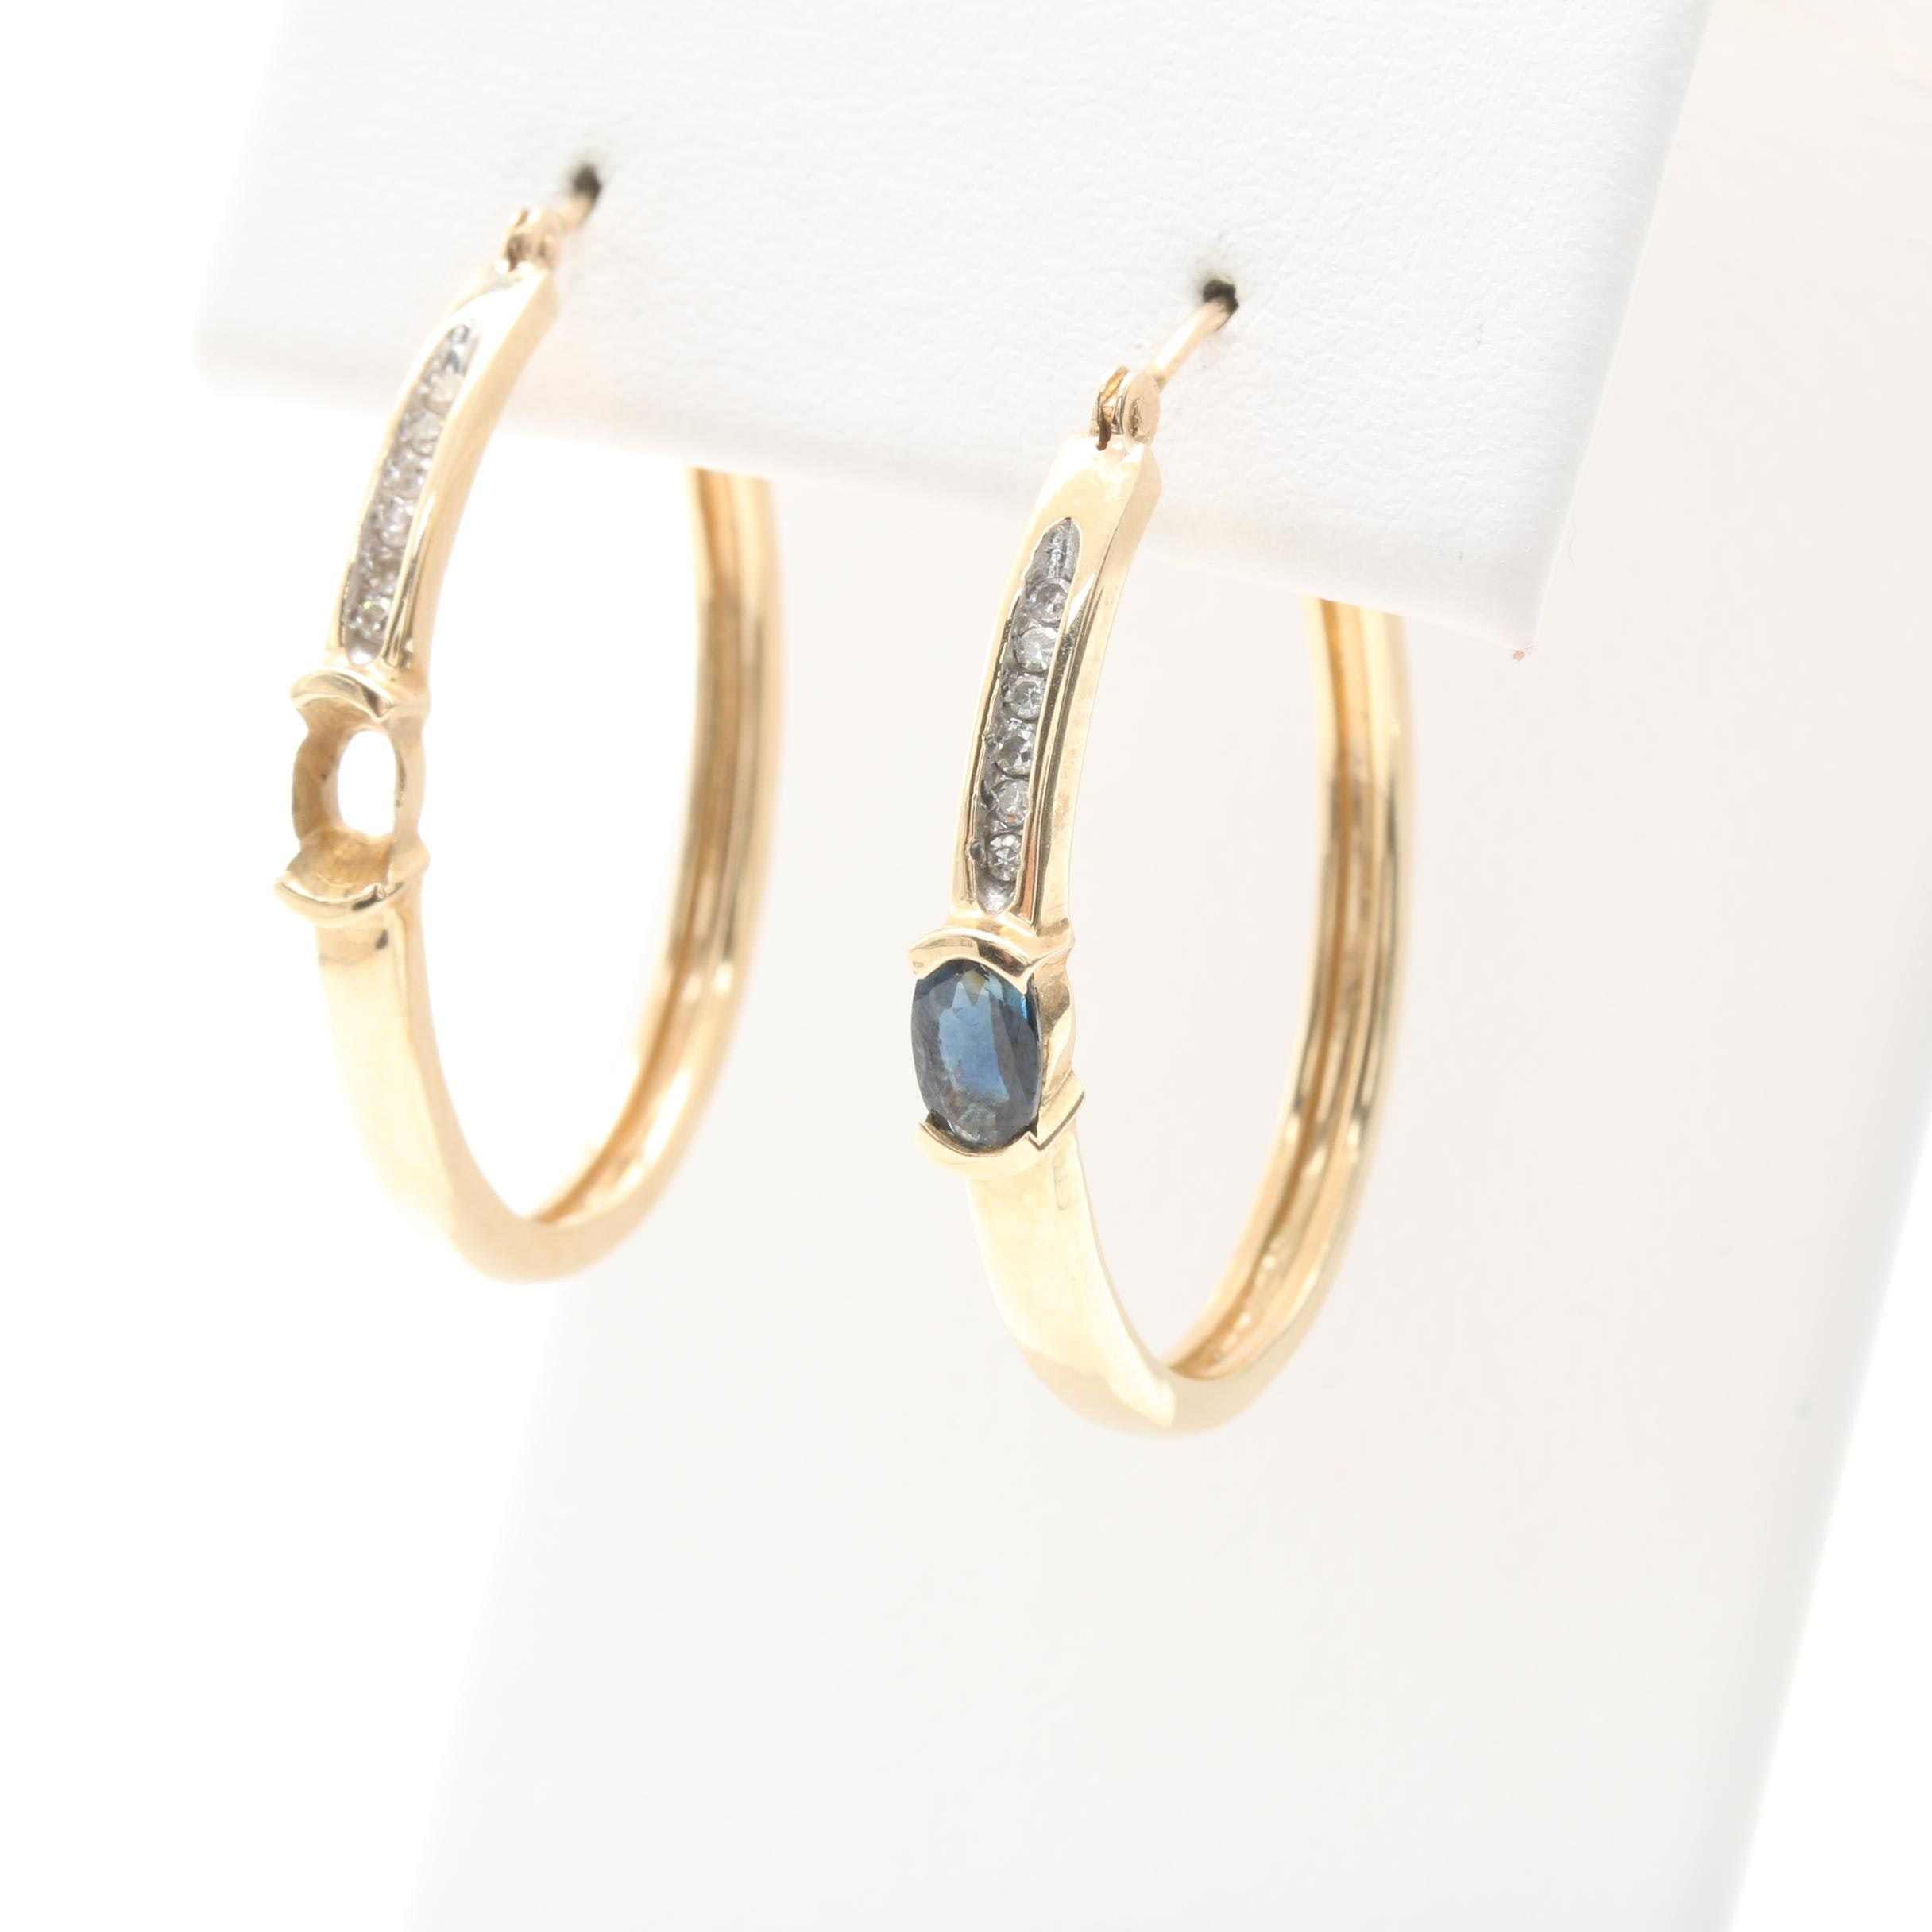 10K Yellow Gold Sapphire and Diamond Hoop Earrings